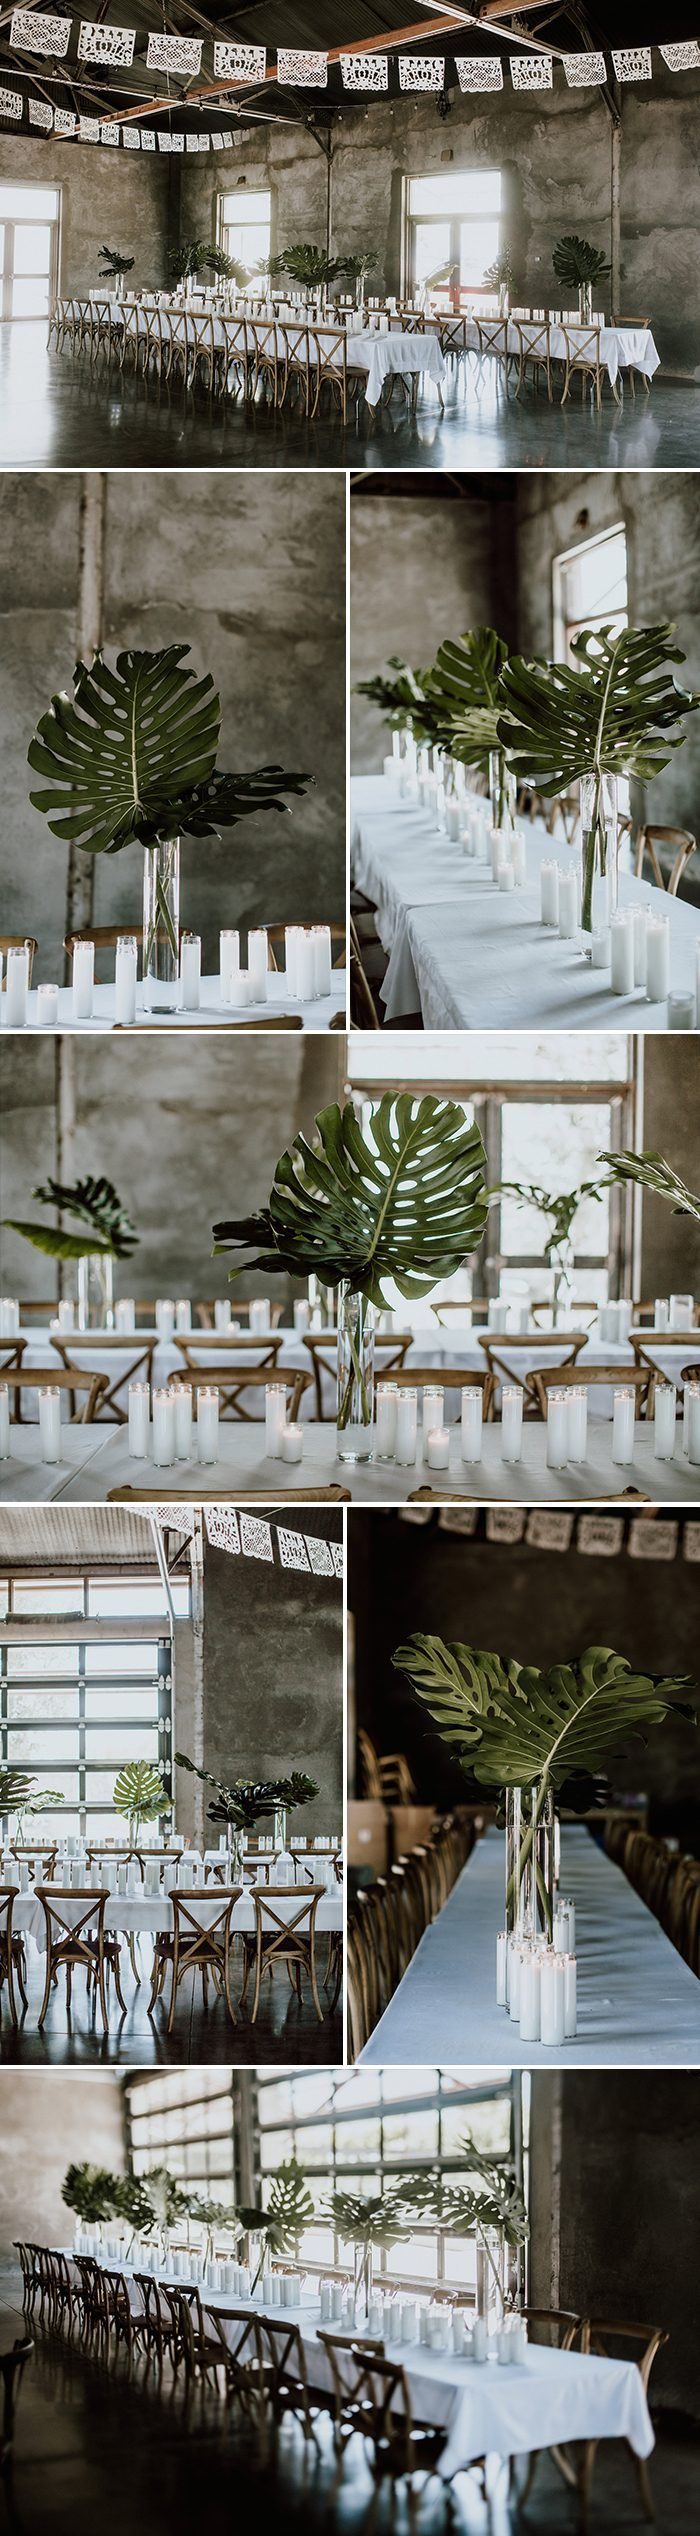 This Marfa wedding is the perfect blend of modern and eclectic vibes. Joseph West Photography perfectly captured the essence of the day.